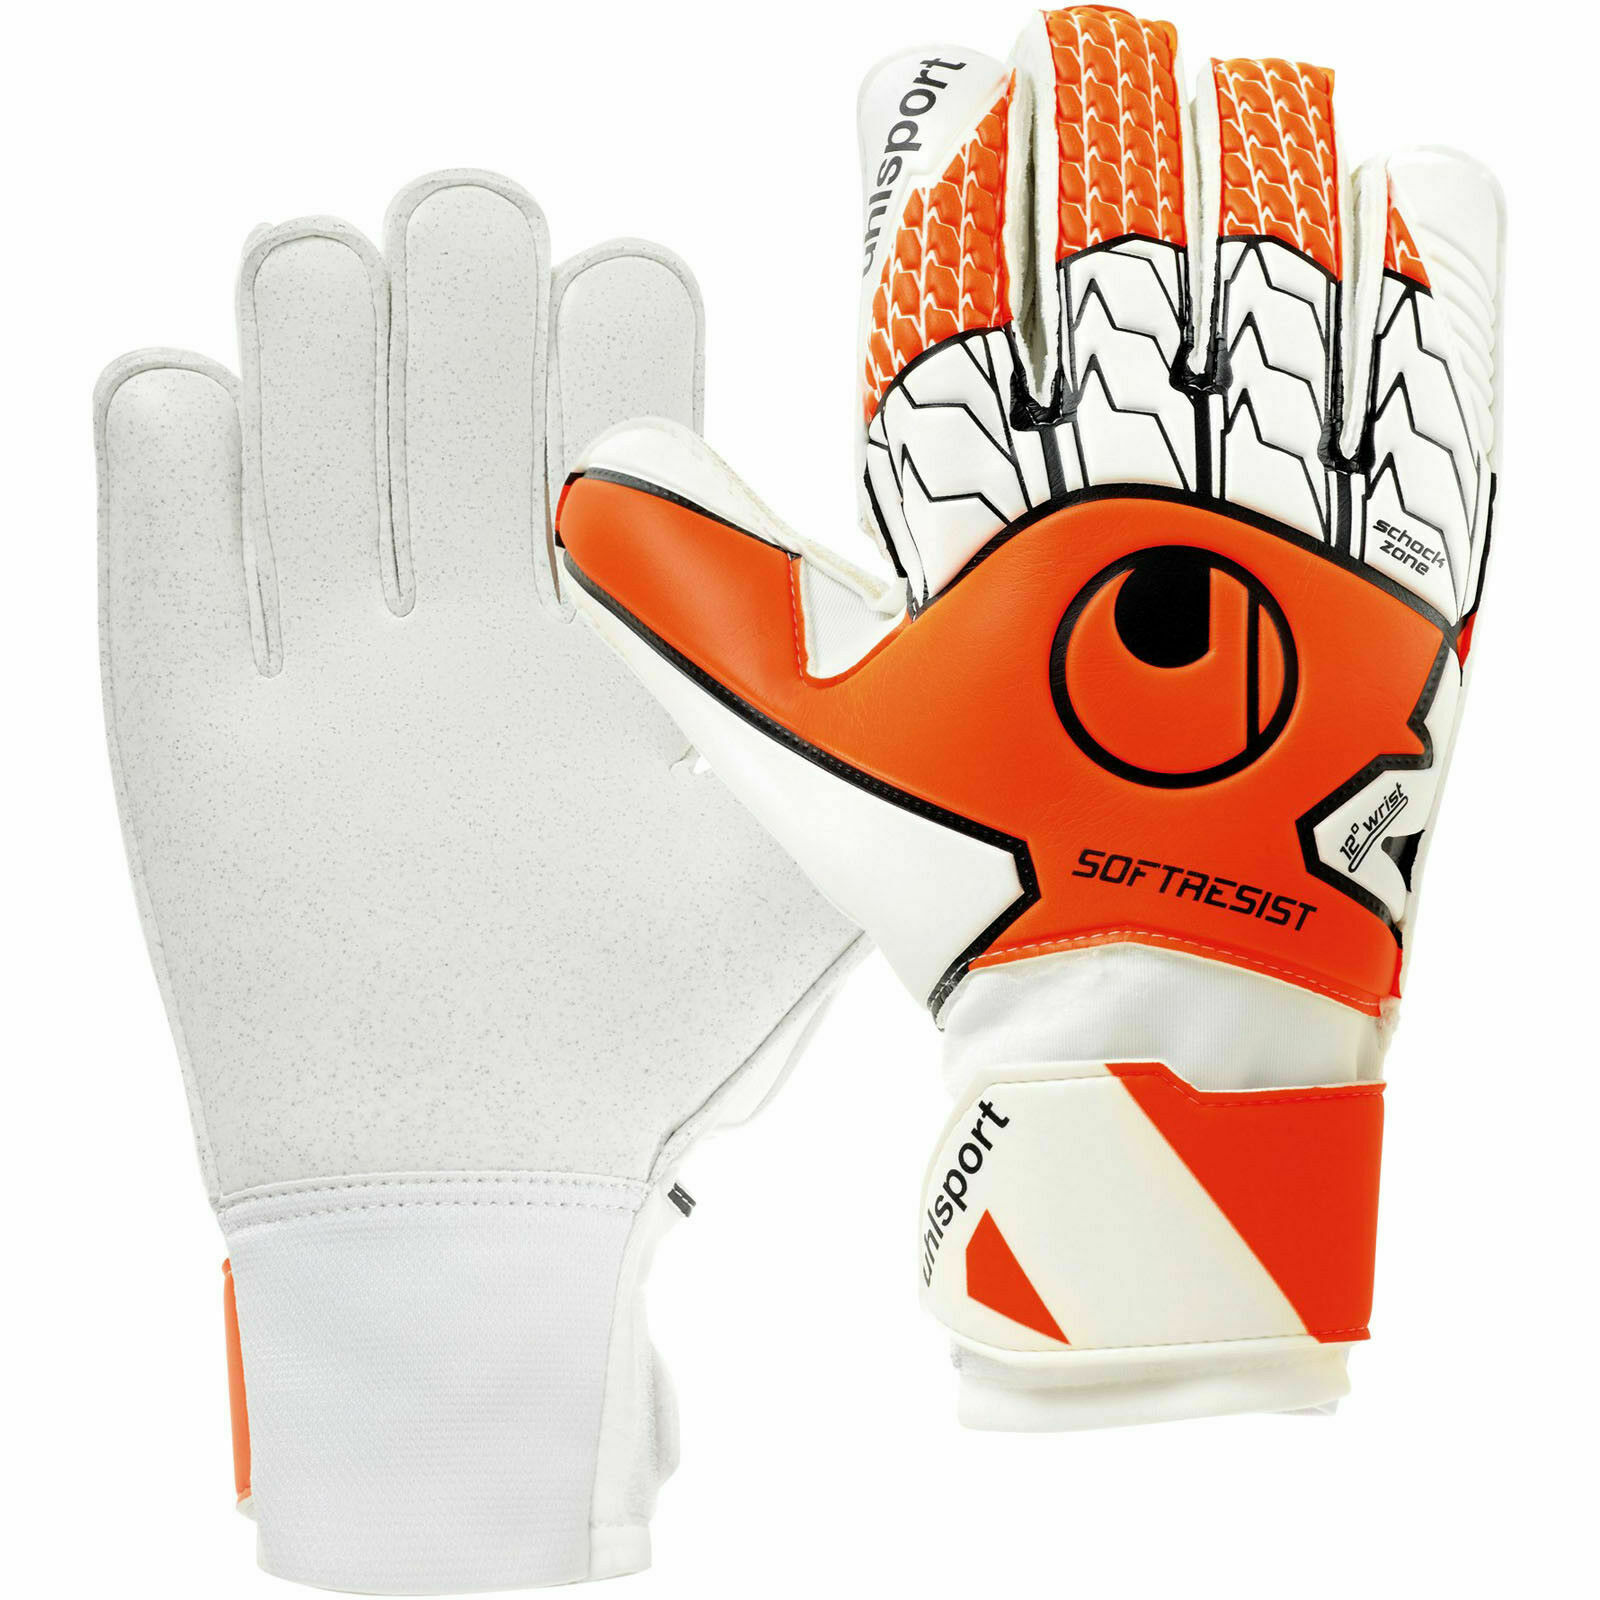 Uhlsport 101110901 Soft Resist Fuo Handschuh Torwart orange-white-black